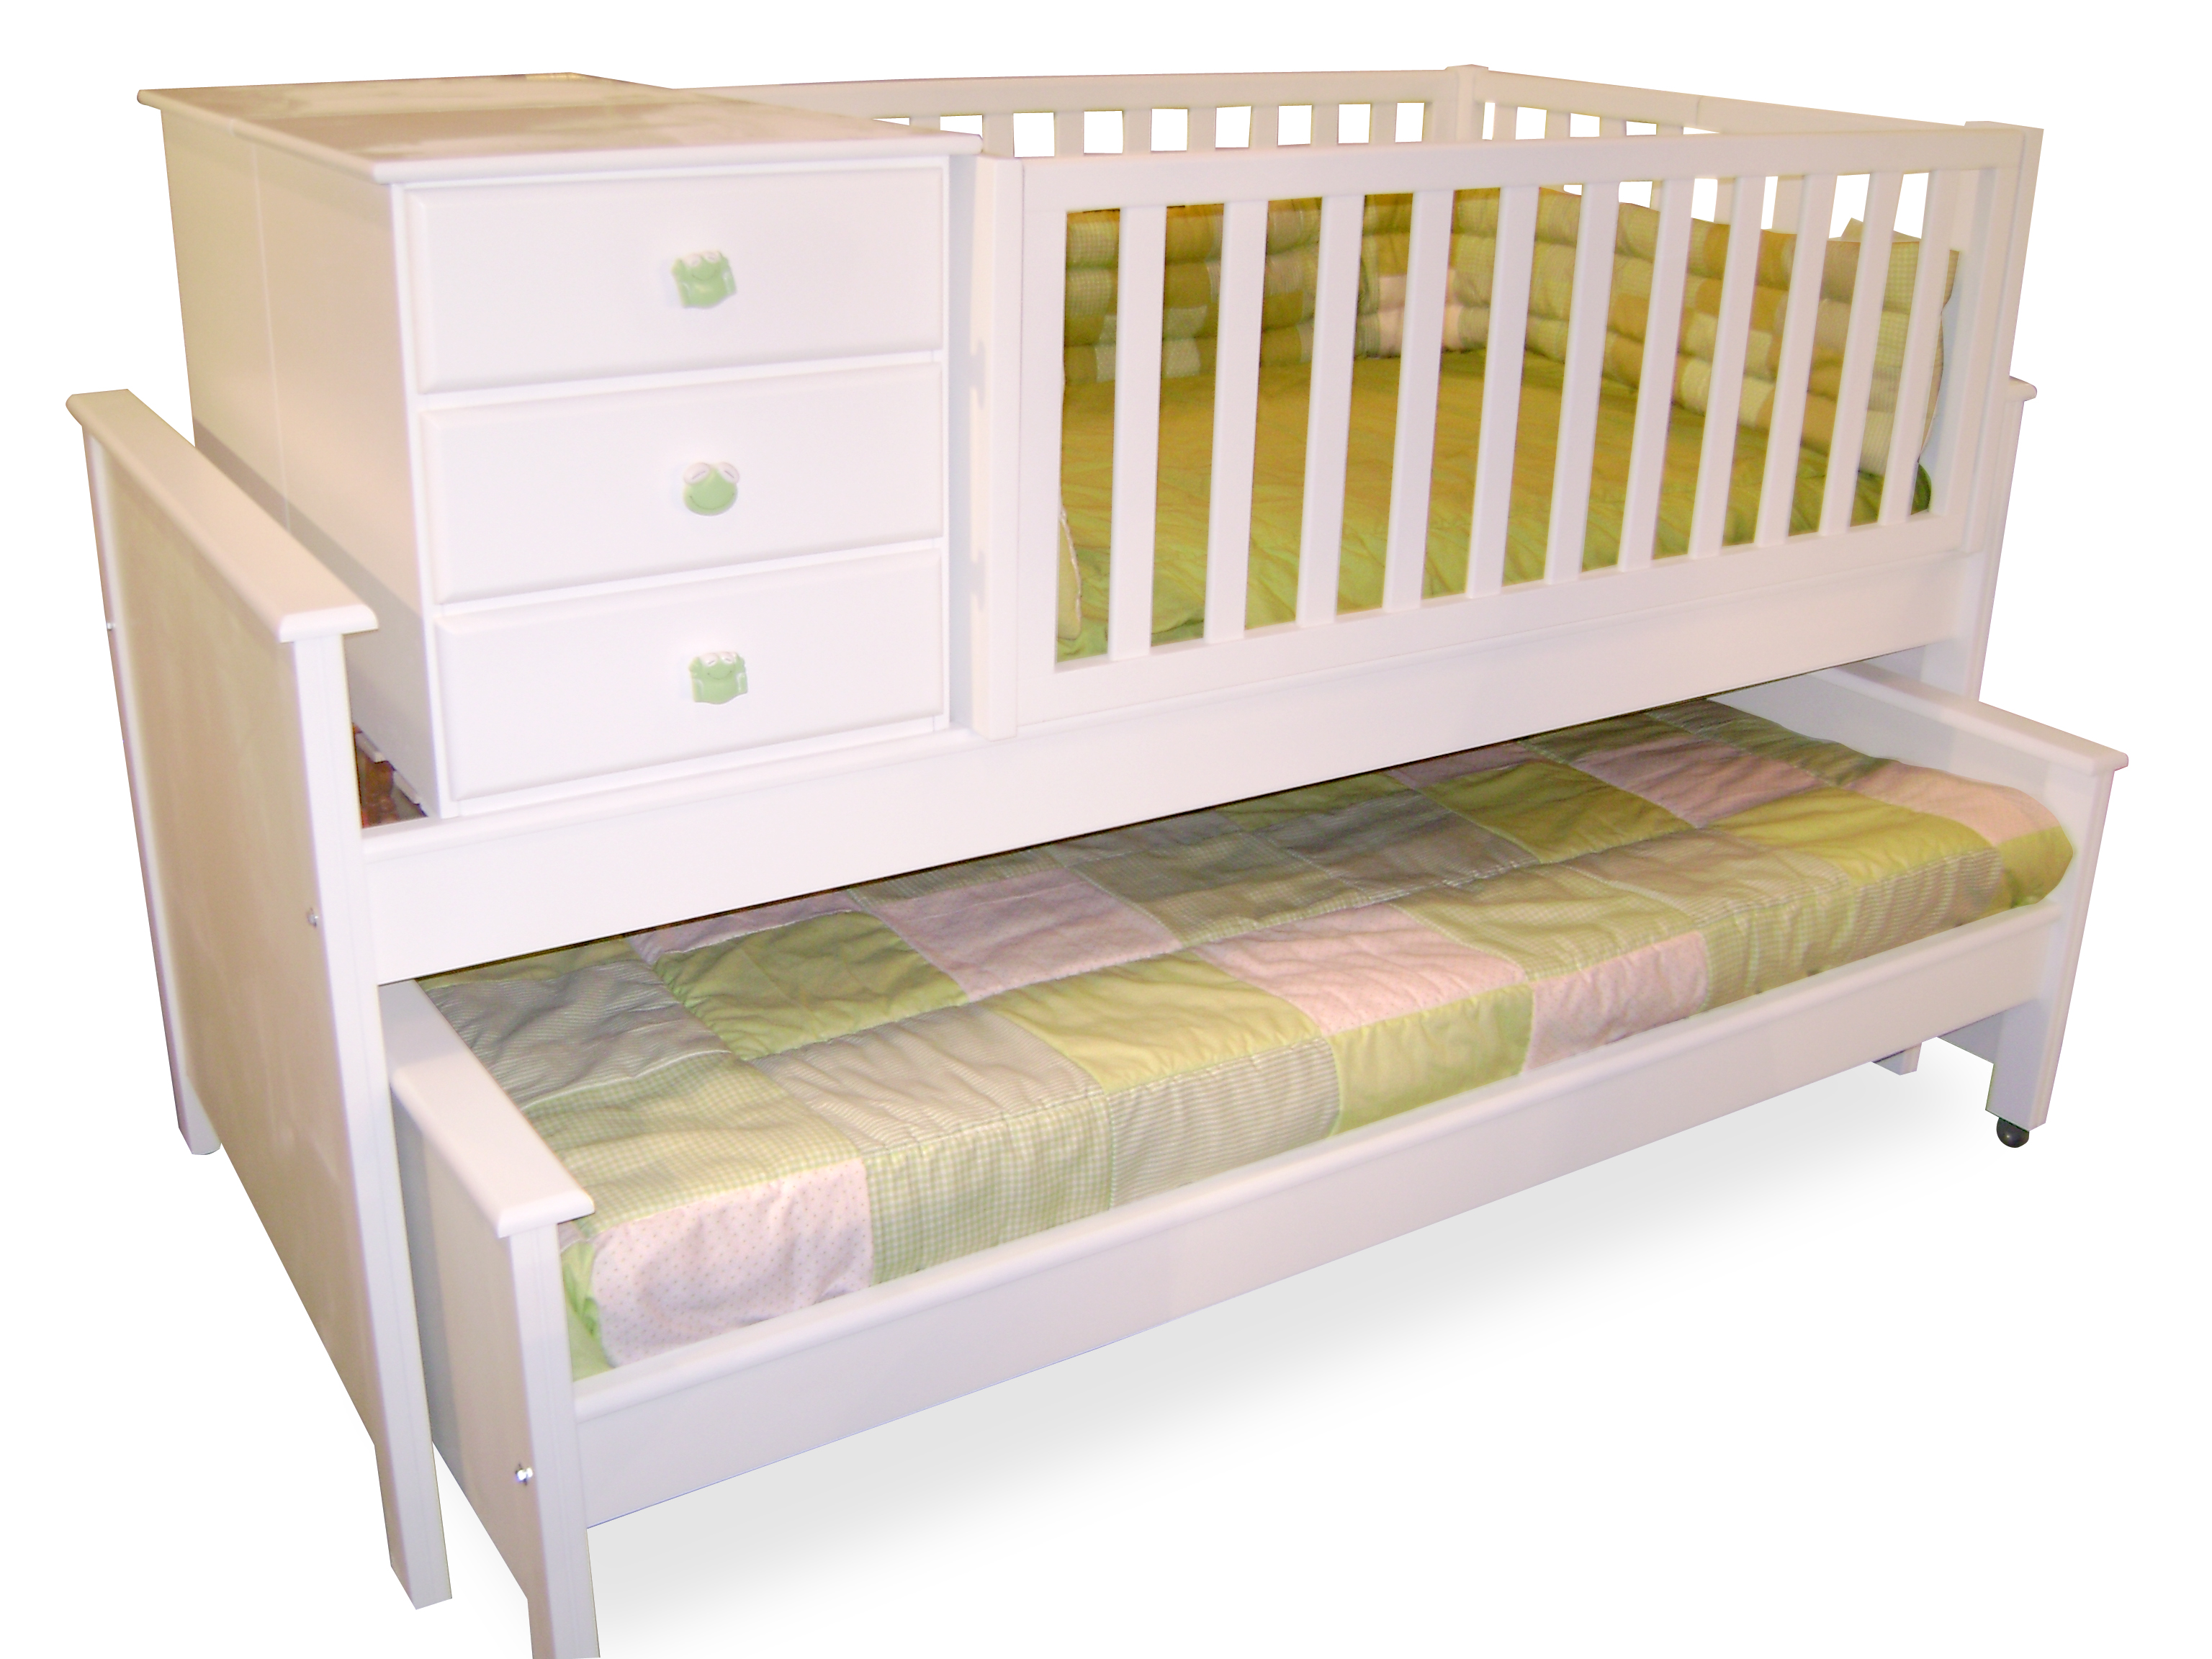 Cama nido doble nest con funcional f brica de muebles for Cama nido doble